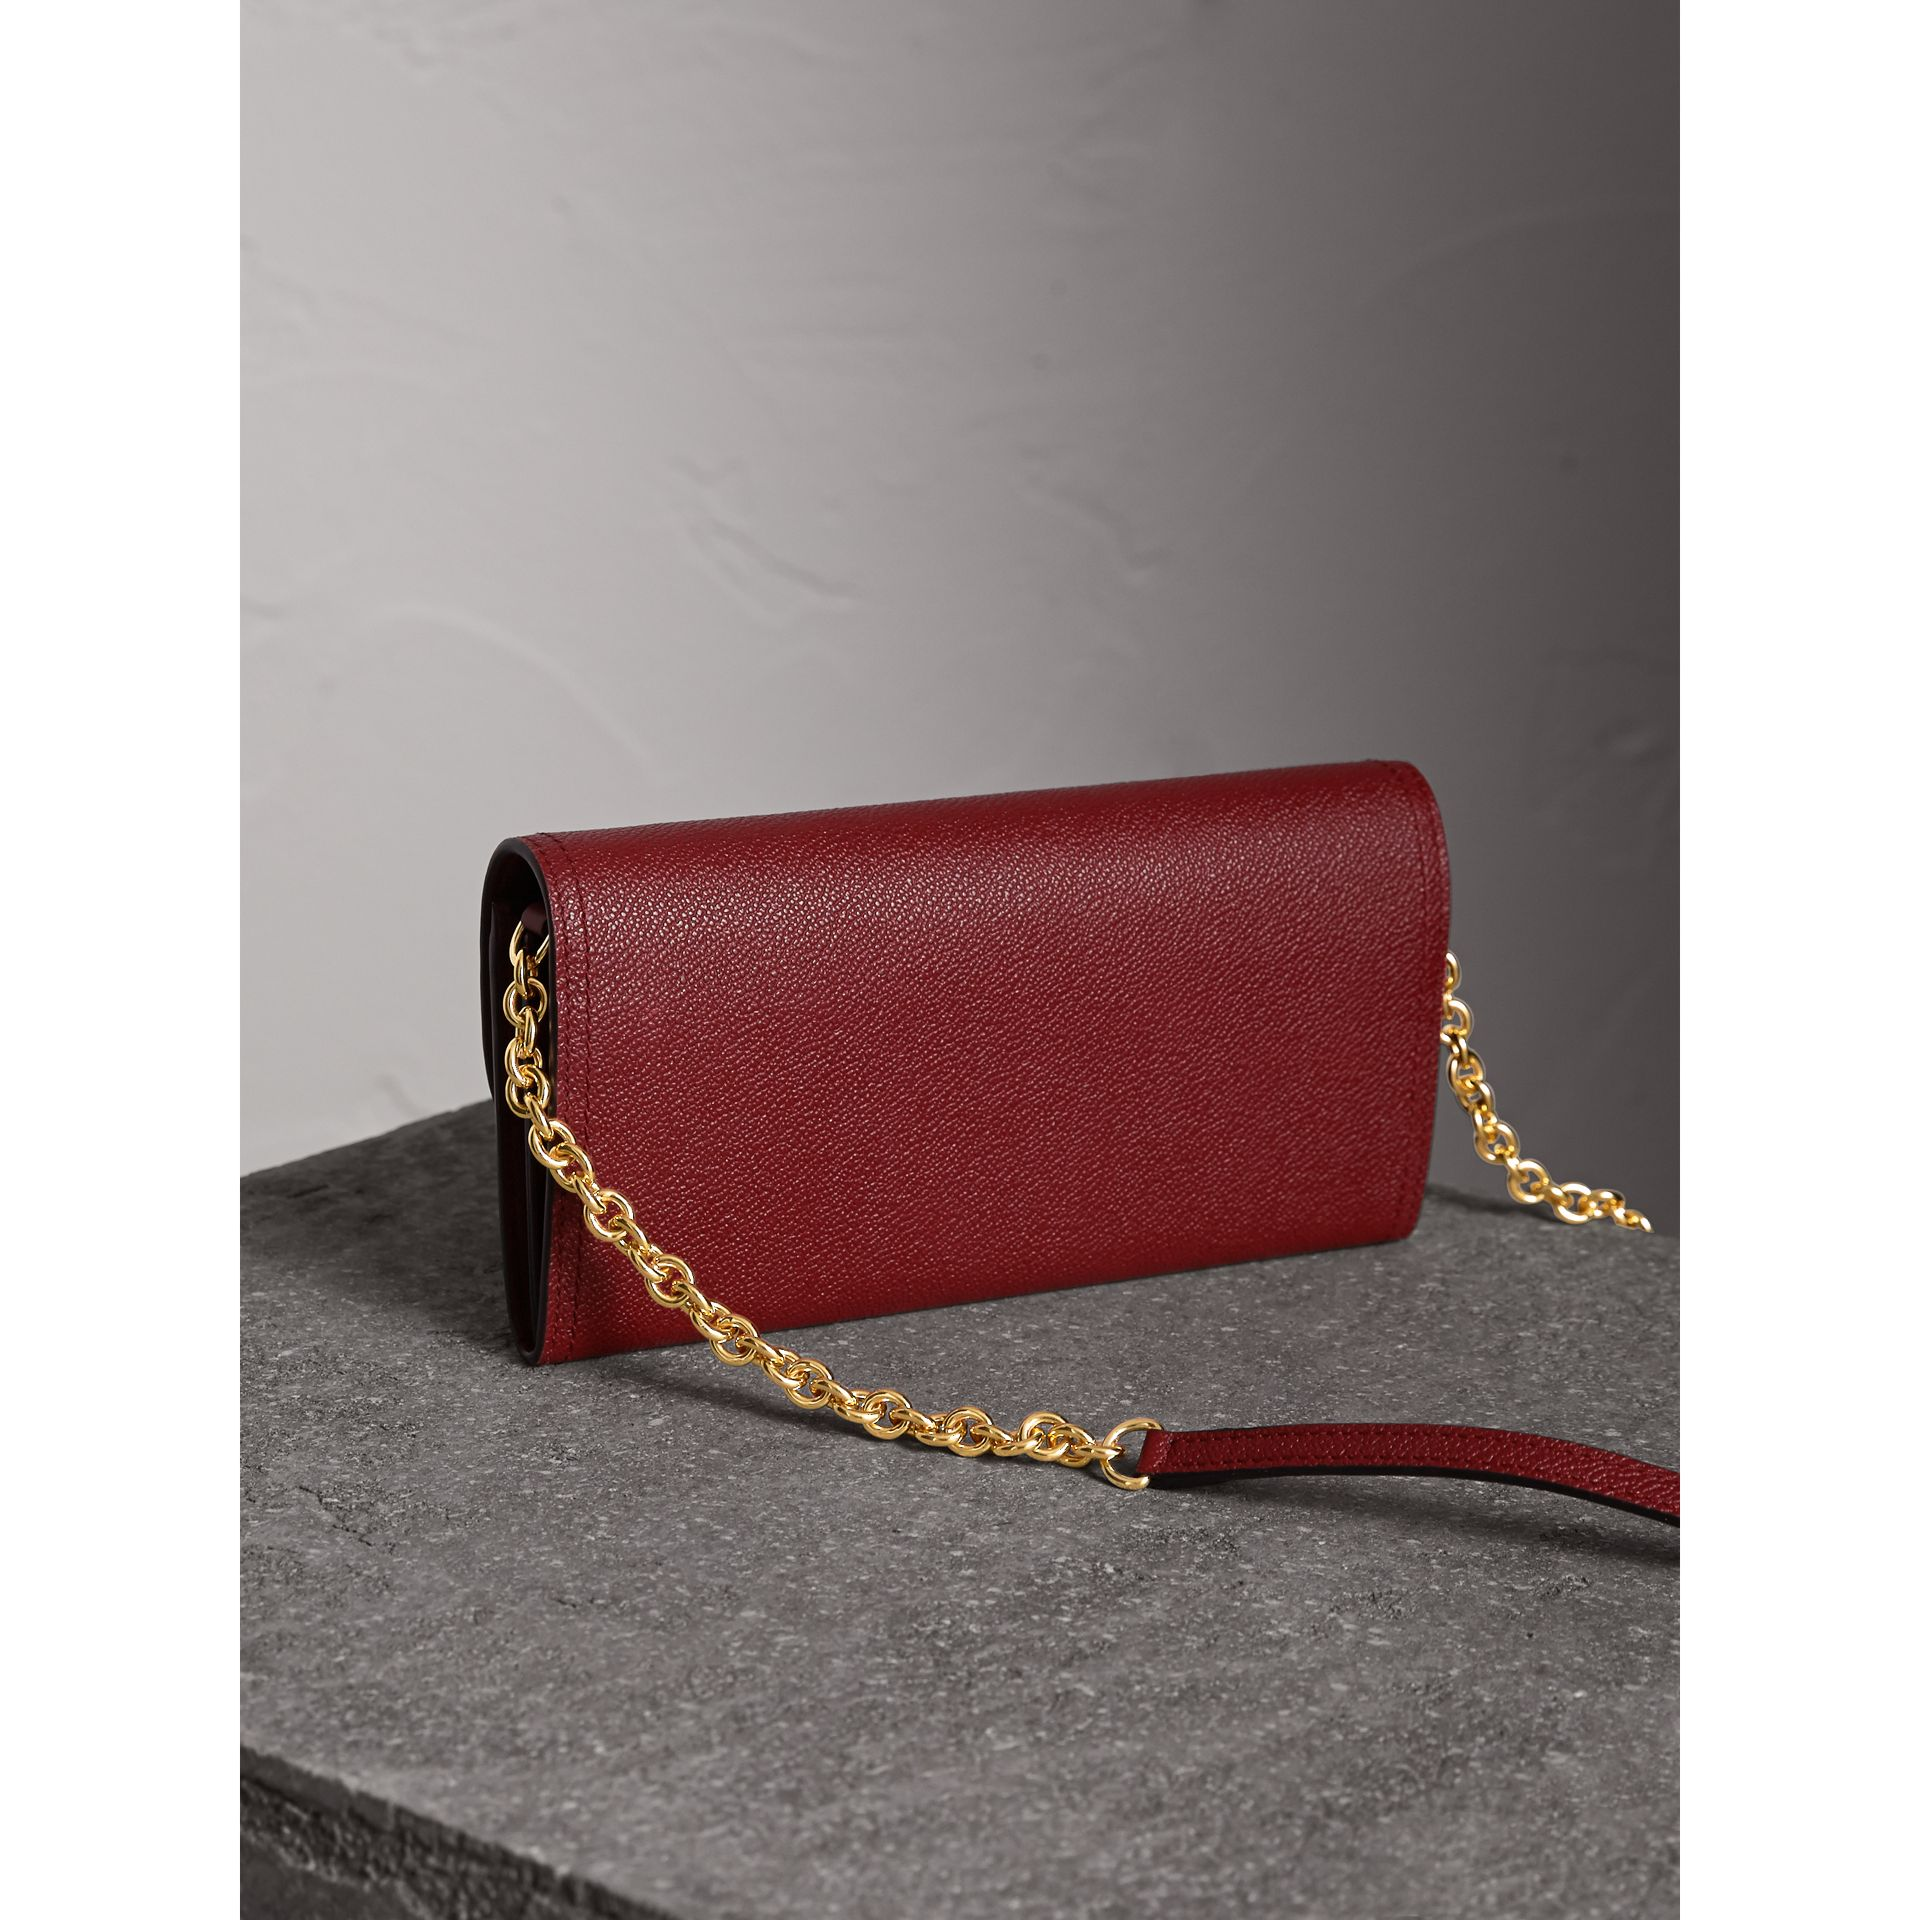 Leather Wallet with Chain in Burgundy - Women | Burberry - gallery image 5